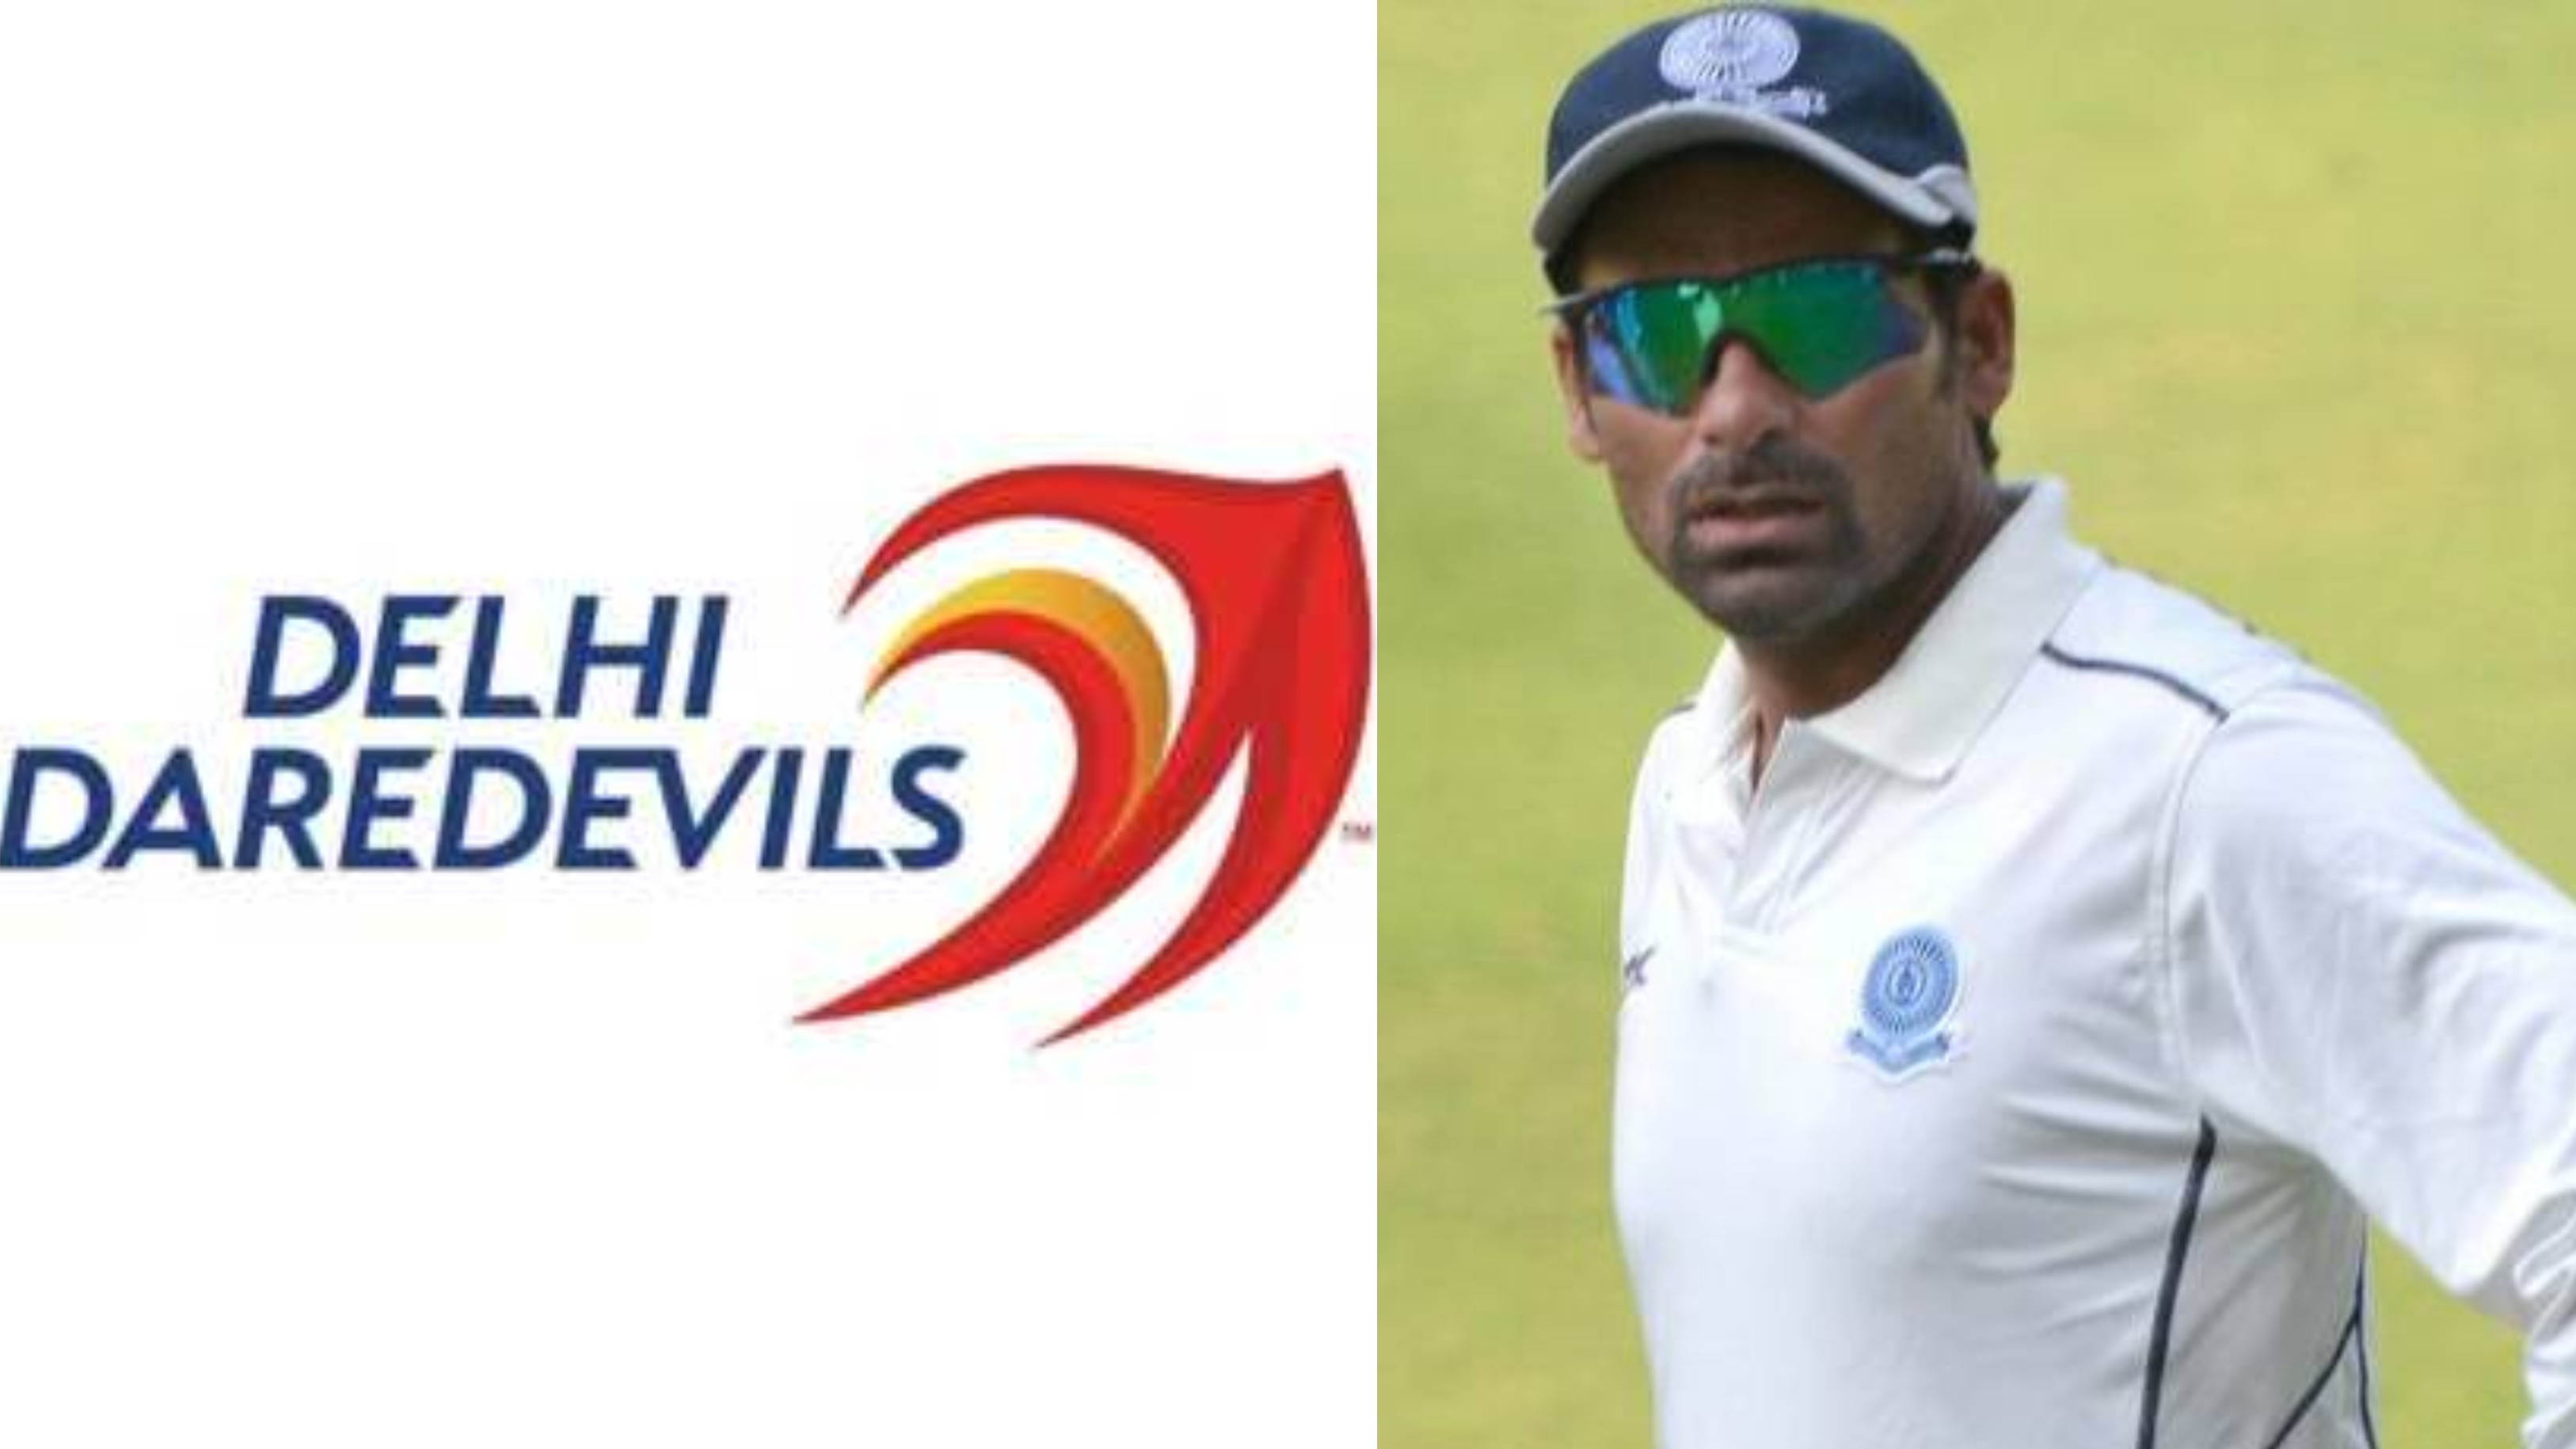 IPL: Mohammad Kaif appointed as assistant Coach of Delhi Daredevils